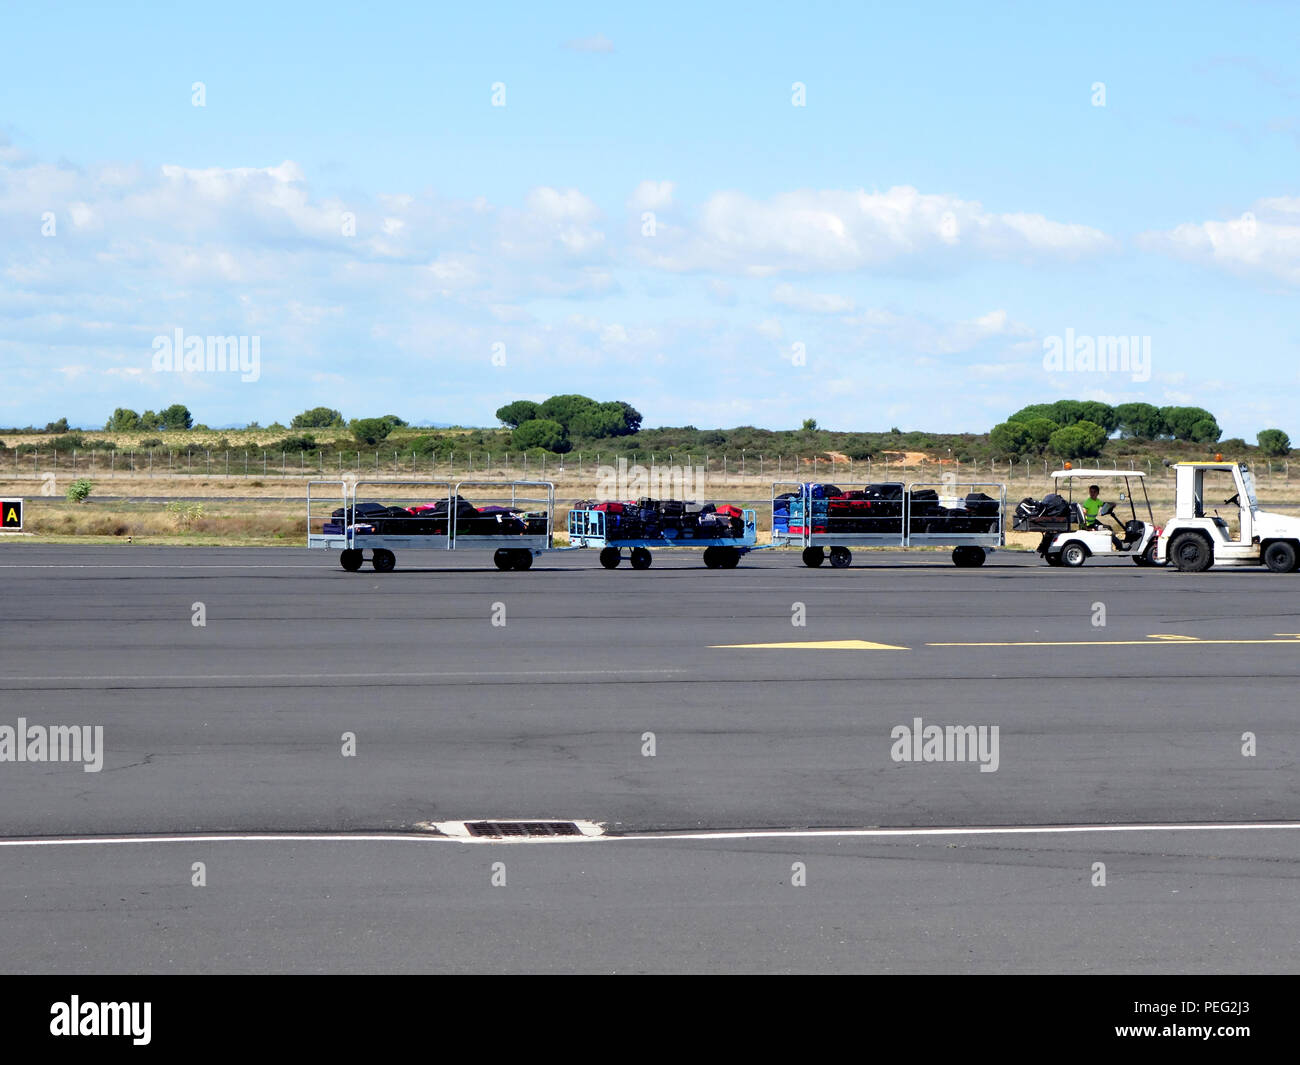 Airport apron tractor and carts carry baggage to be put on a conveyor into a plane at Beziers Cap d'Agde Airport, France - Stock Image